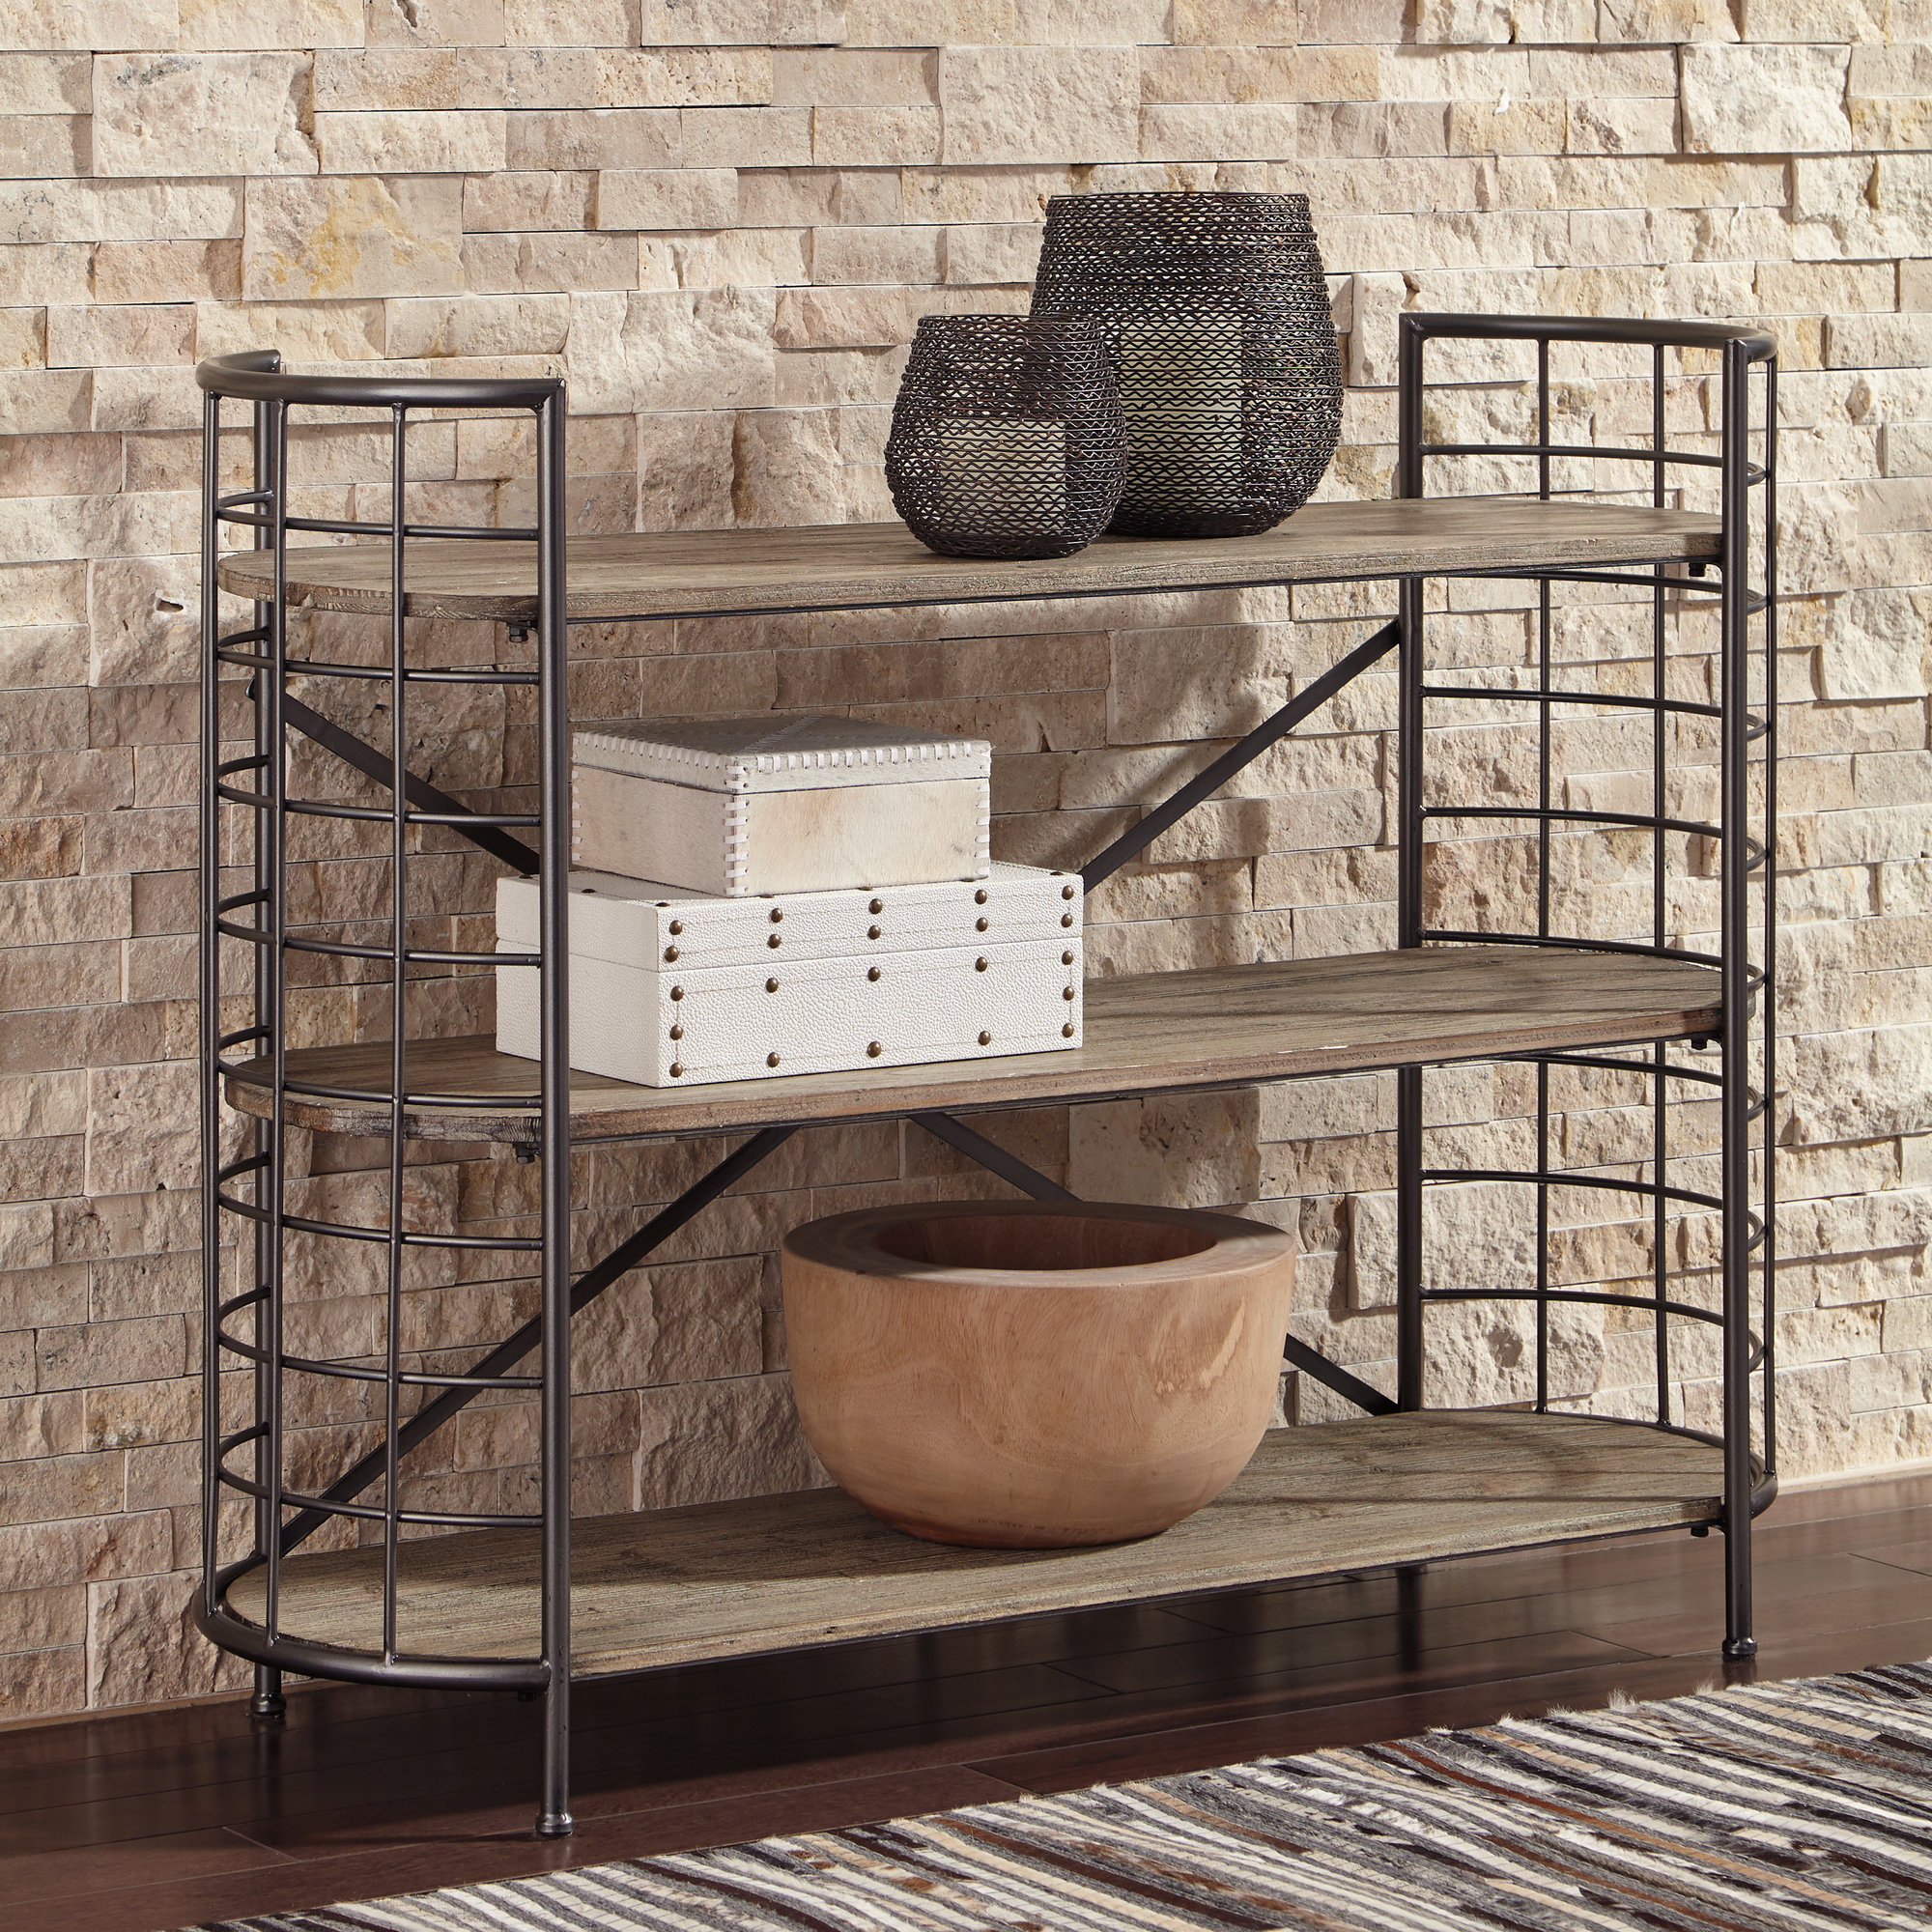 Fashionable Macon Etagere Bookcases Intended For Details About Williston Forge Adler Etagere Bookcase (View 17 of 20)